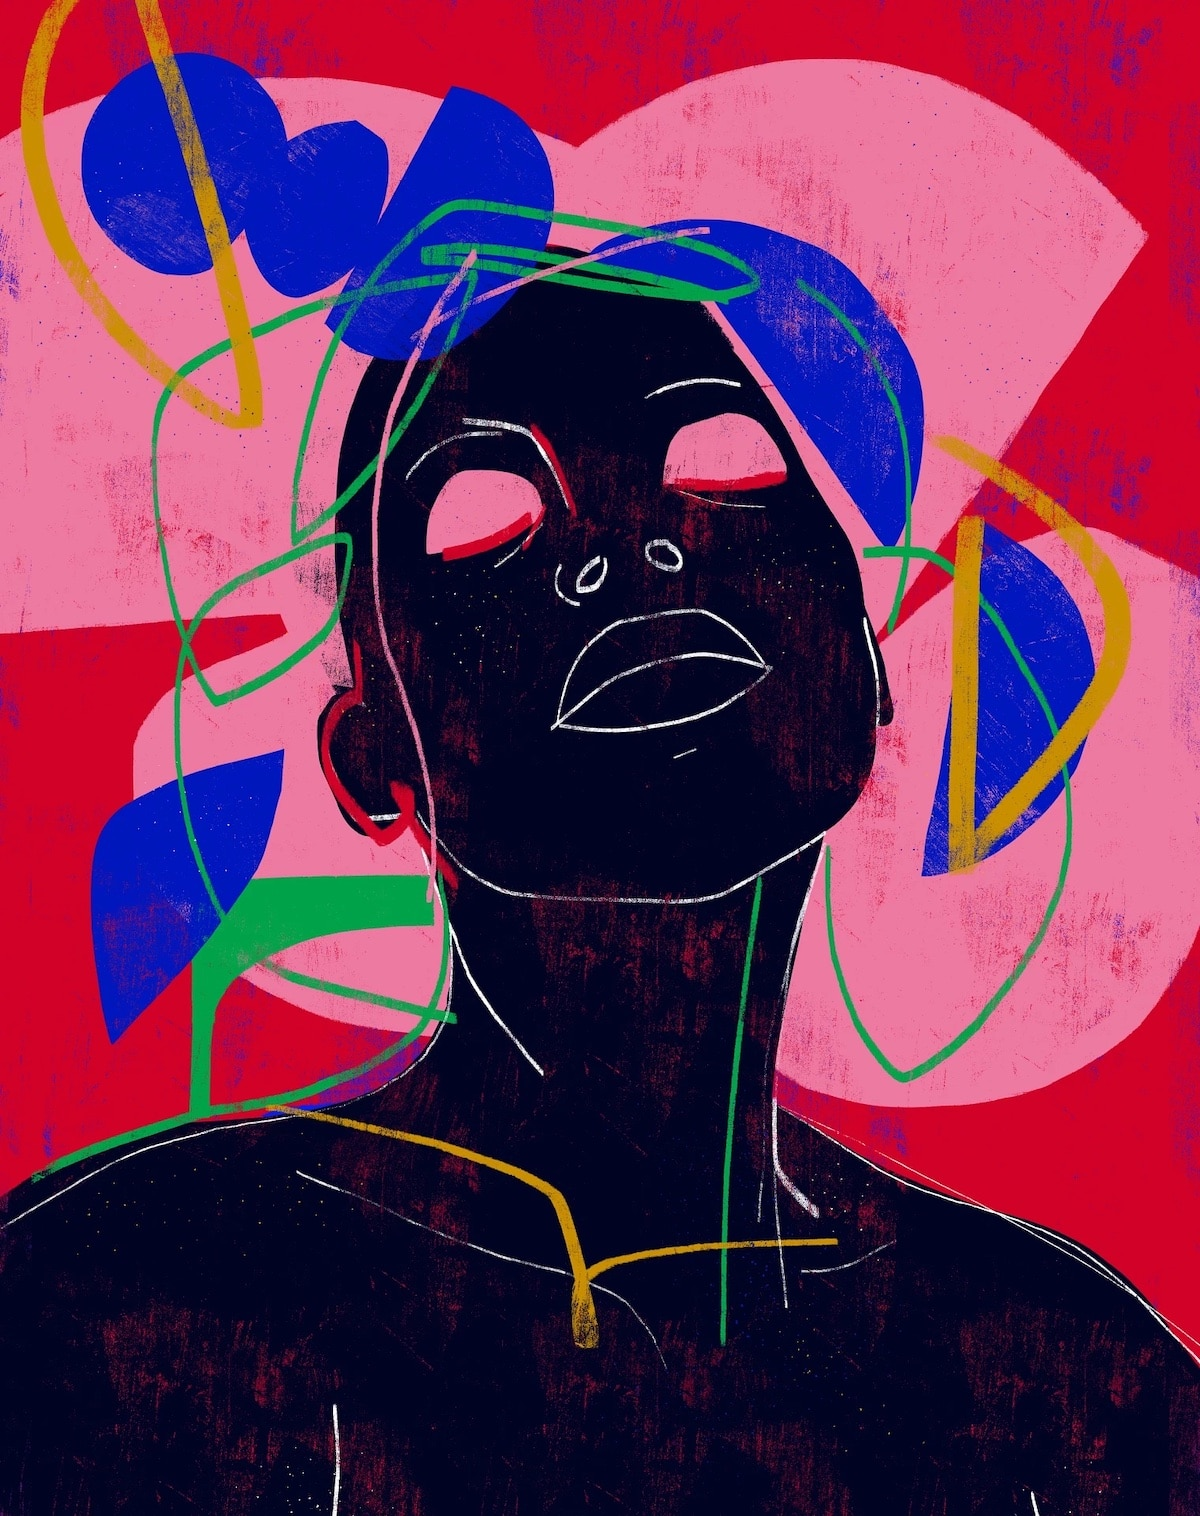 Colorful Abstract Woman Line Drawing Portraits by Luciano Cain